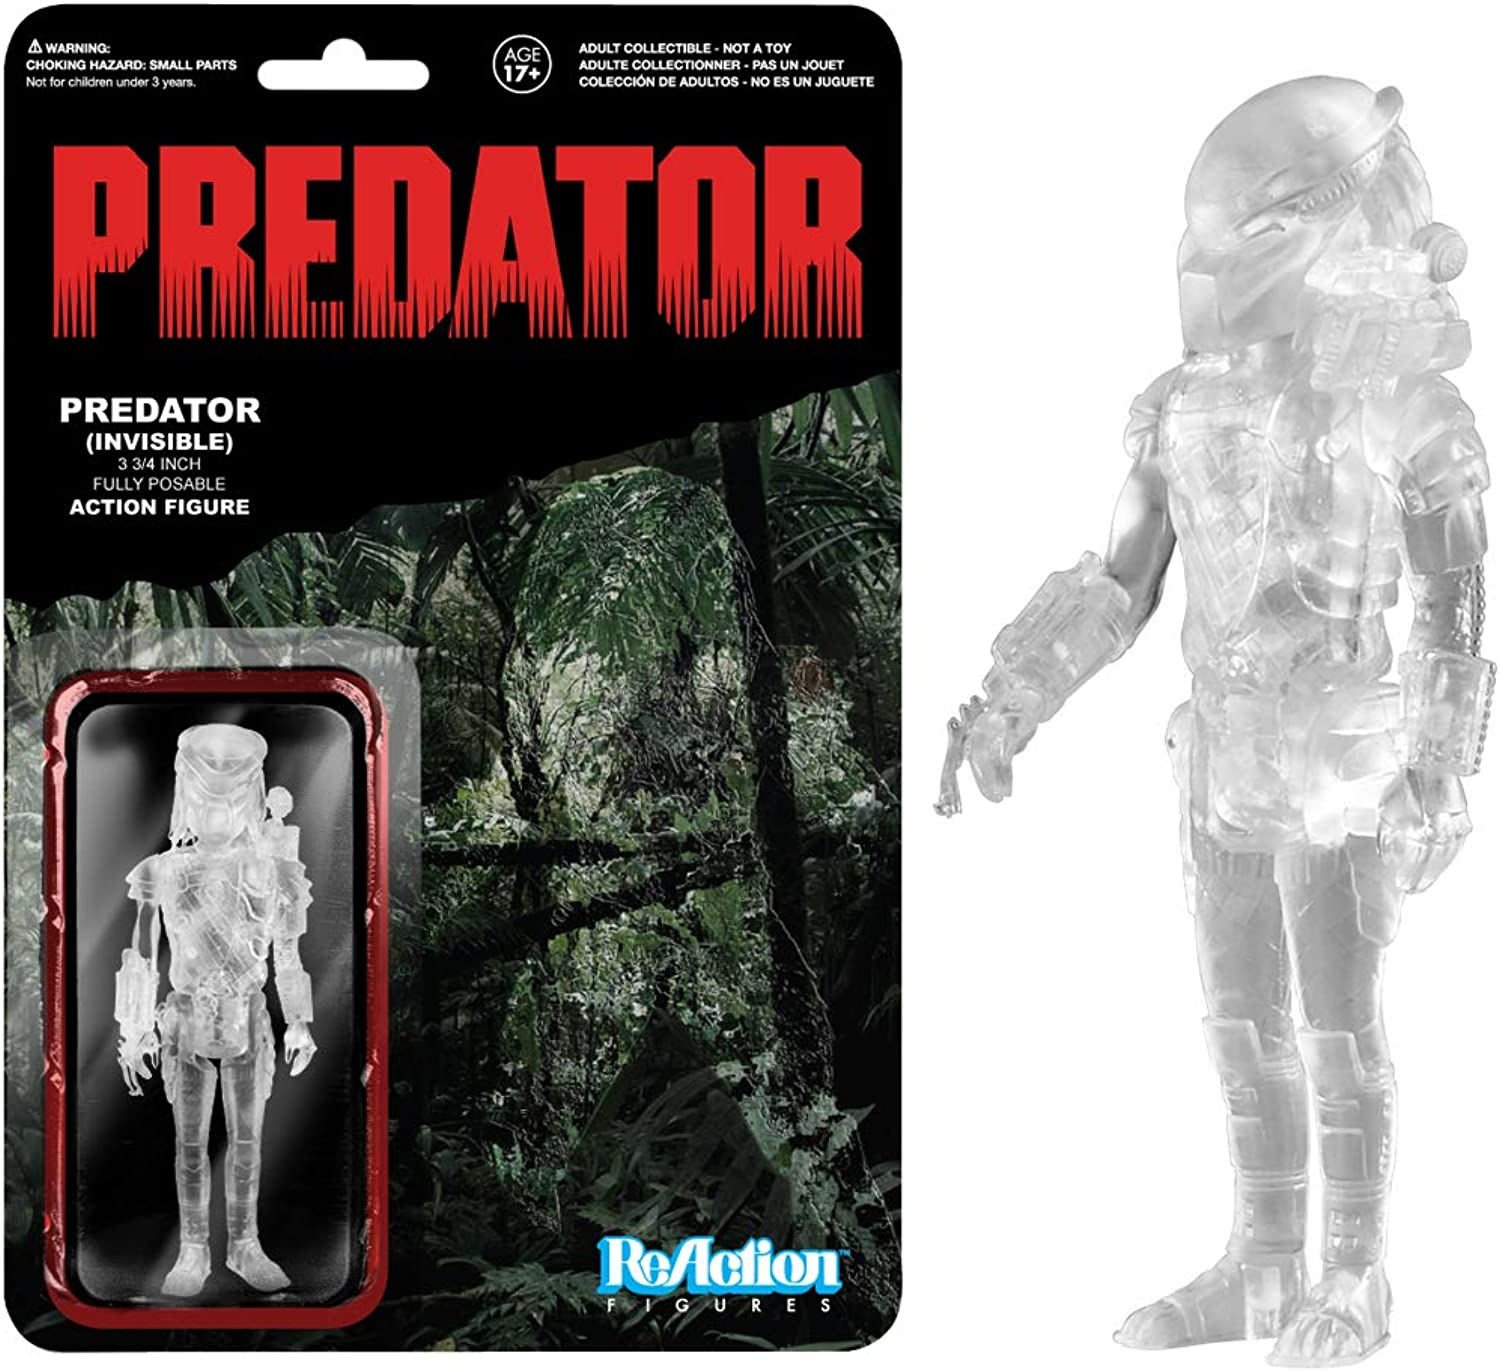 Predator Clear Masked Predator ReAction 3 3 4-Inch Retro Action Figure by Predator